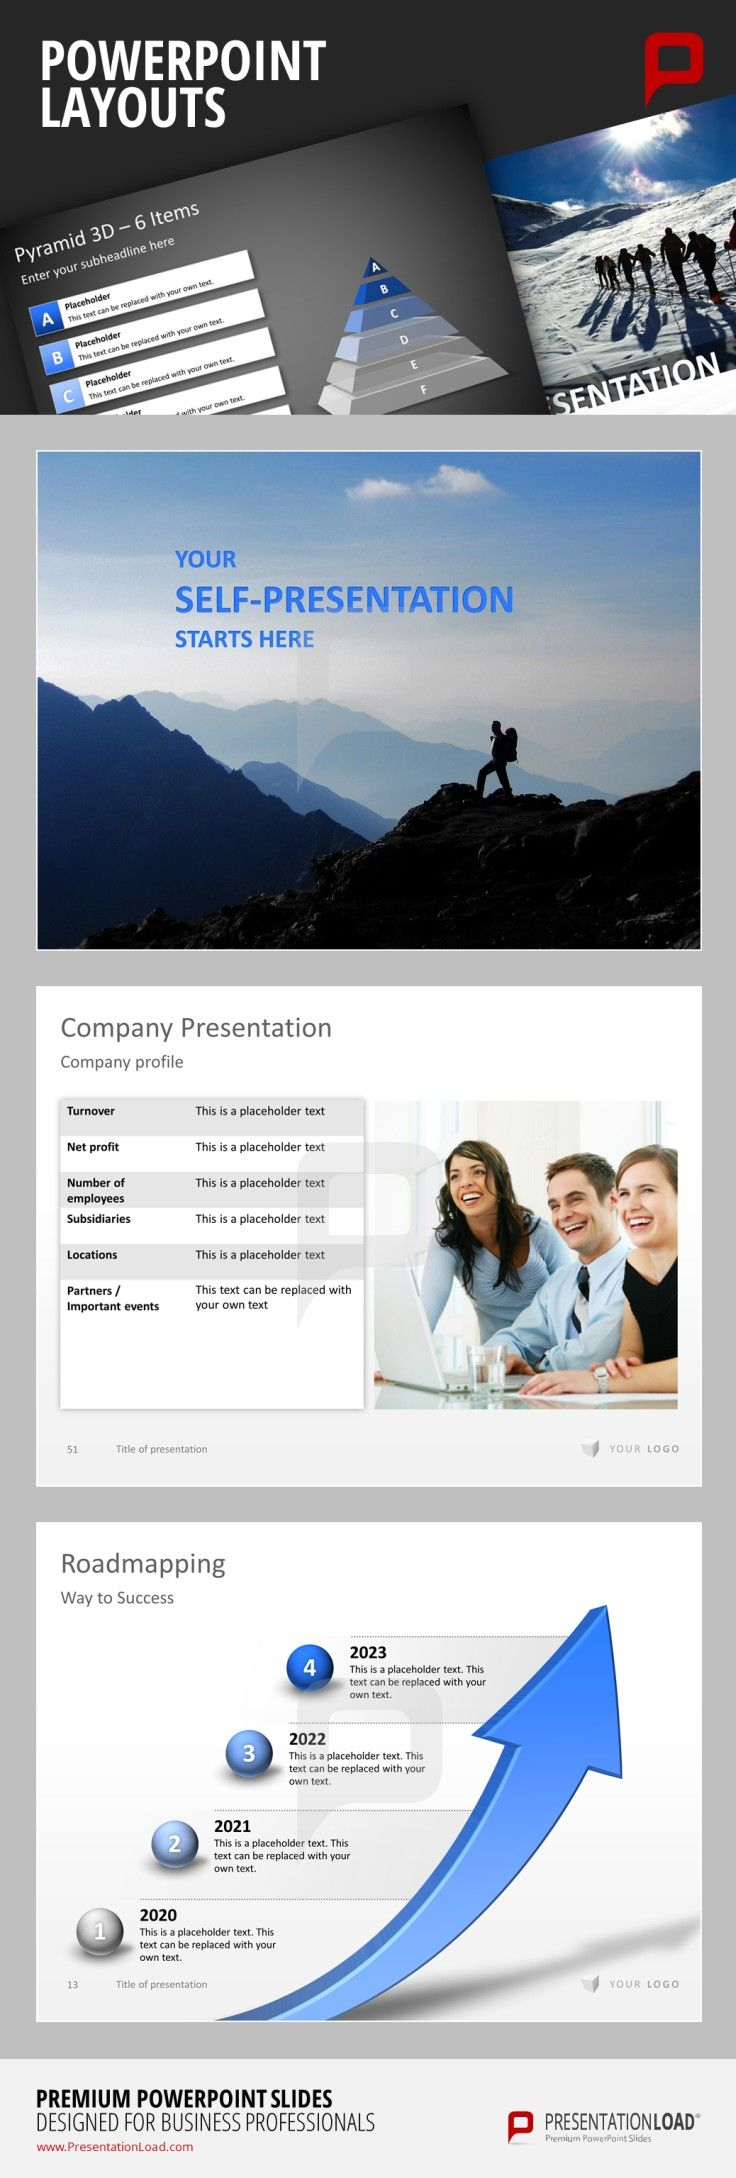 Professional PowerPoint Template Premium PowerPoint Slides for Download  #presentationload http://www.presentationload.com/powerpoint-charts-diagrams/